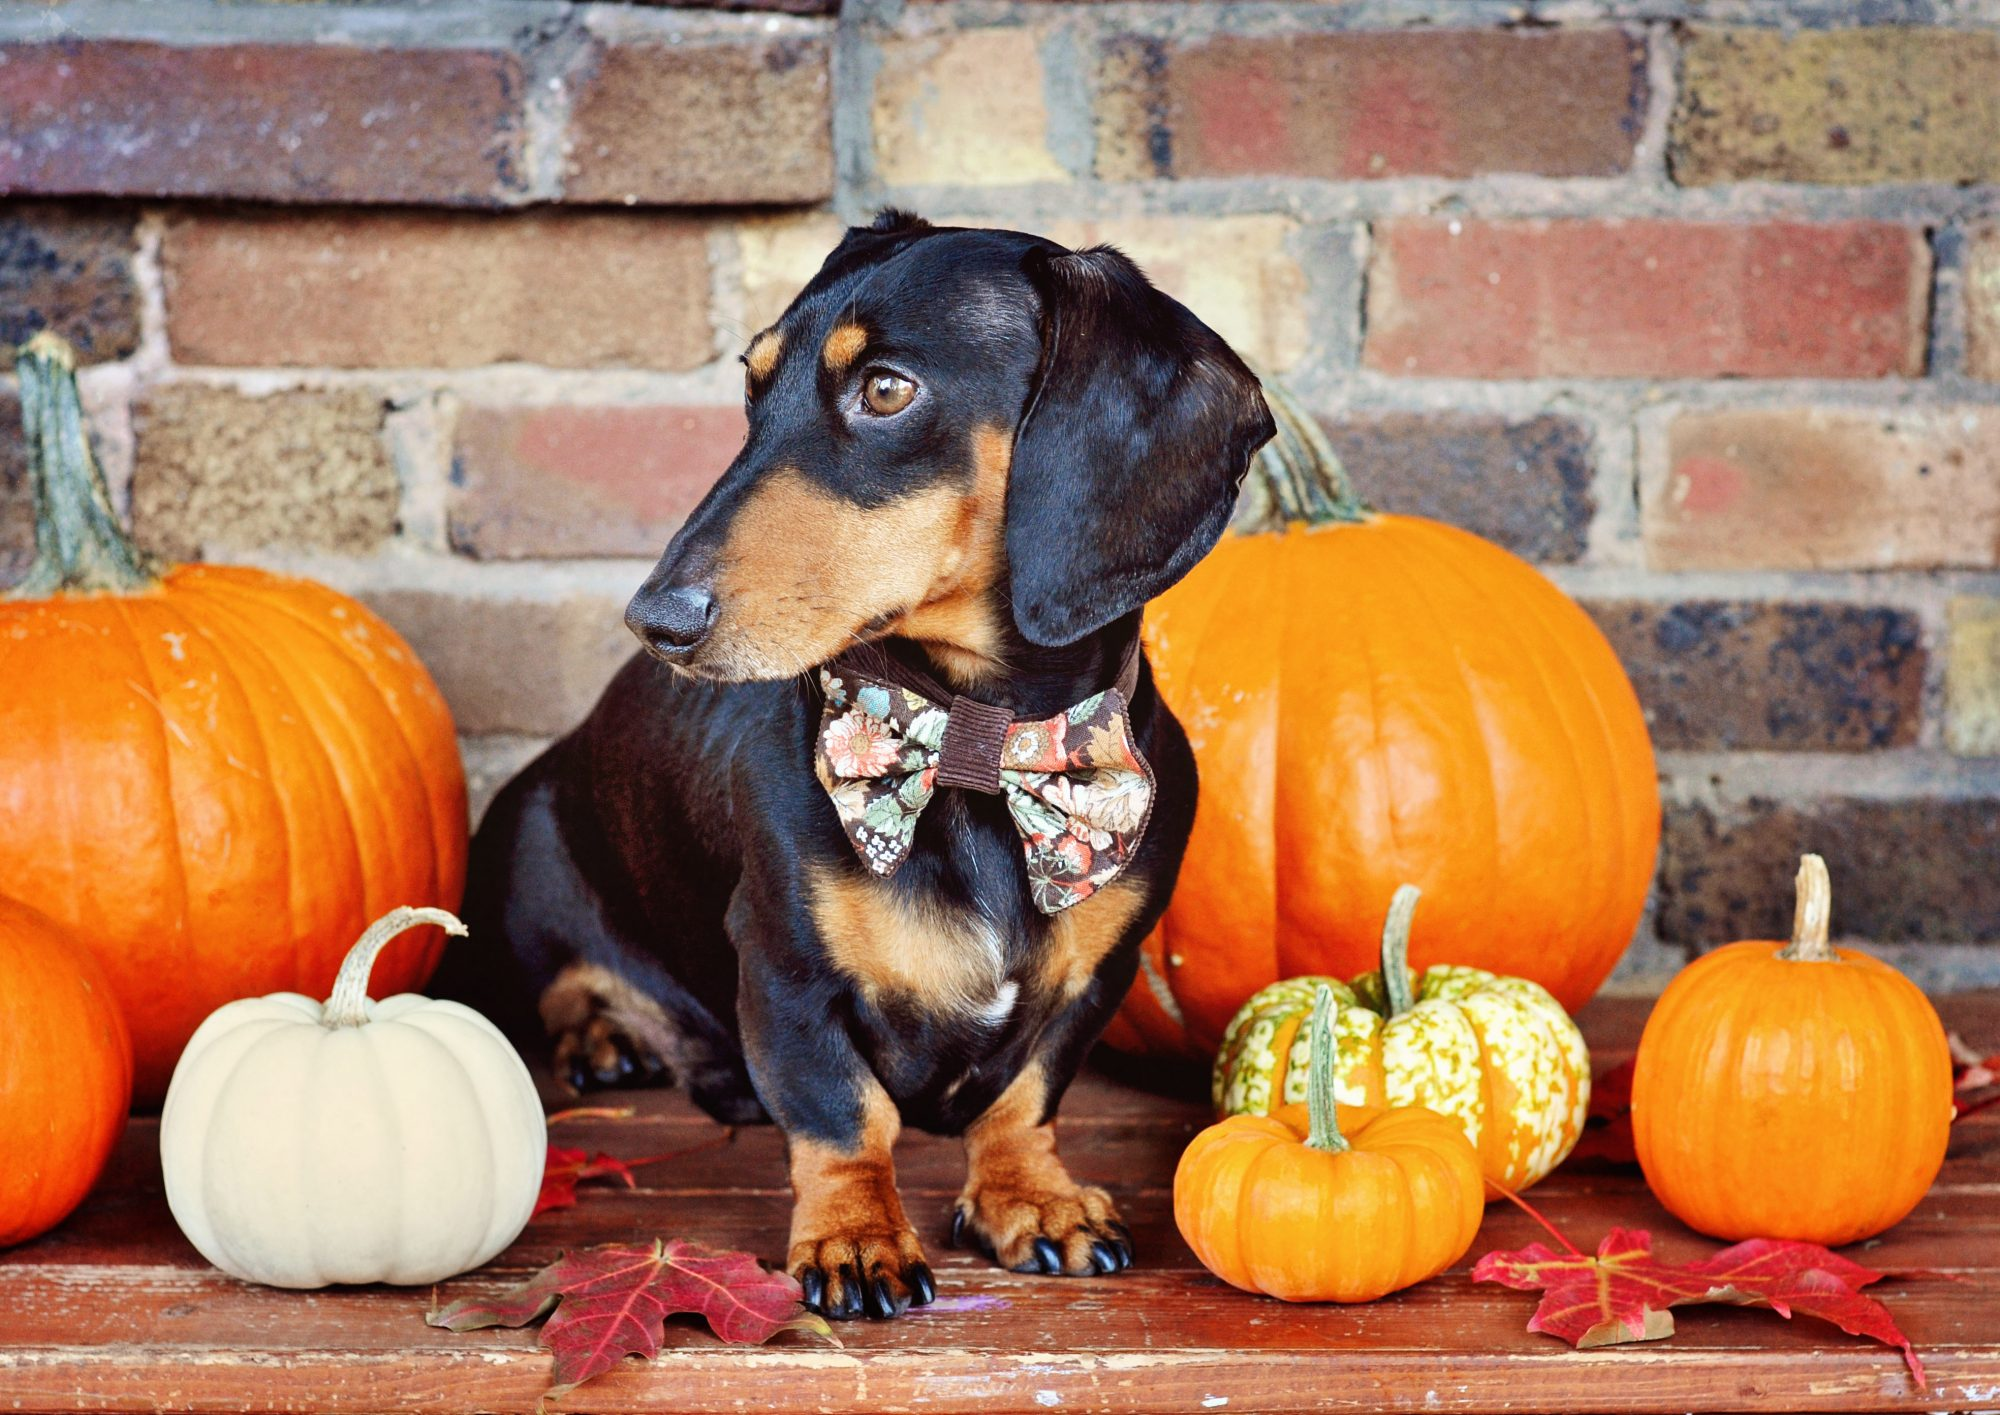 RX_1610_Fall Puppies_Dachshund with Pumpkins